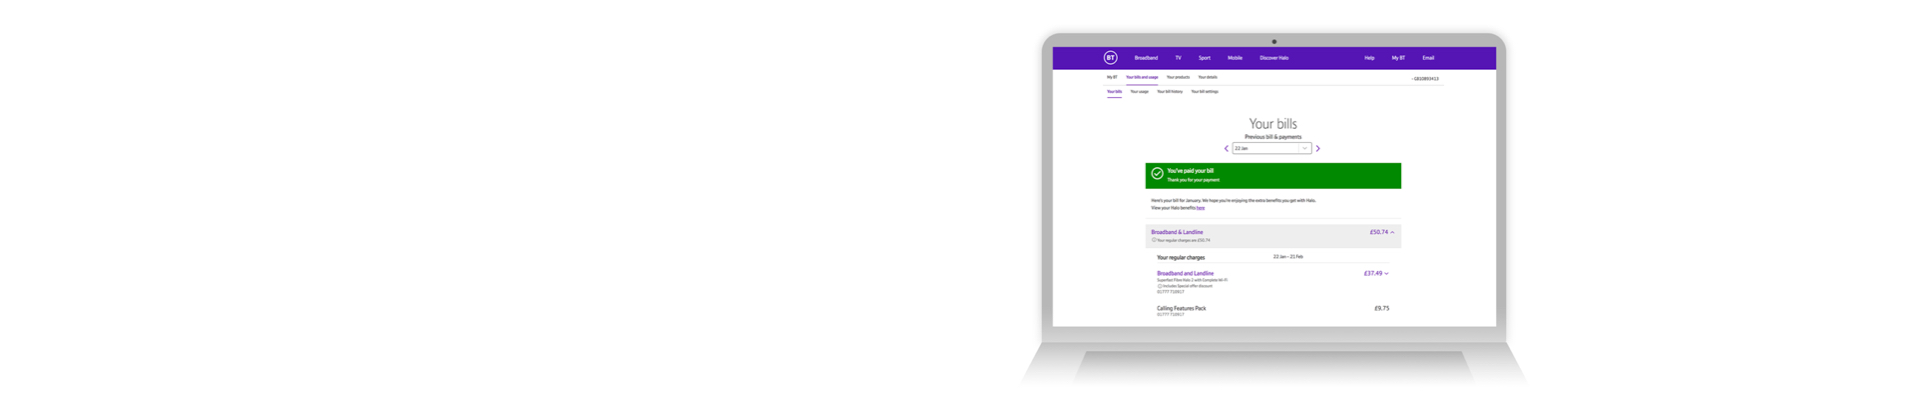 View your bills and manage your account with BT